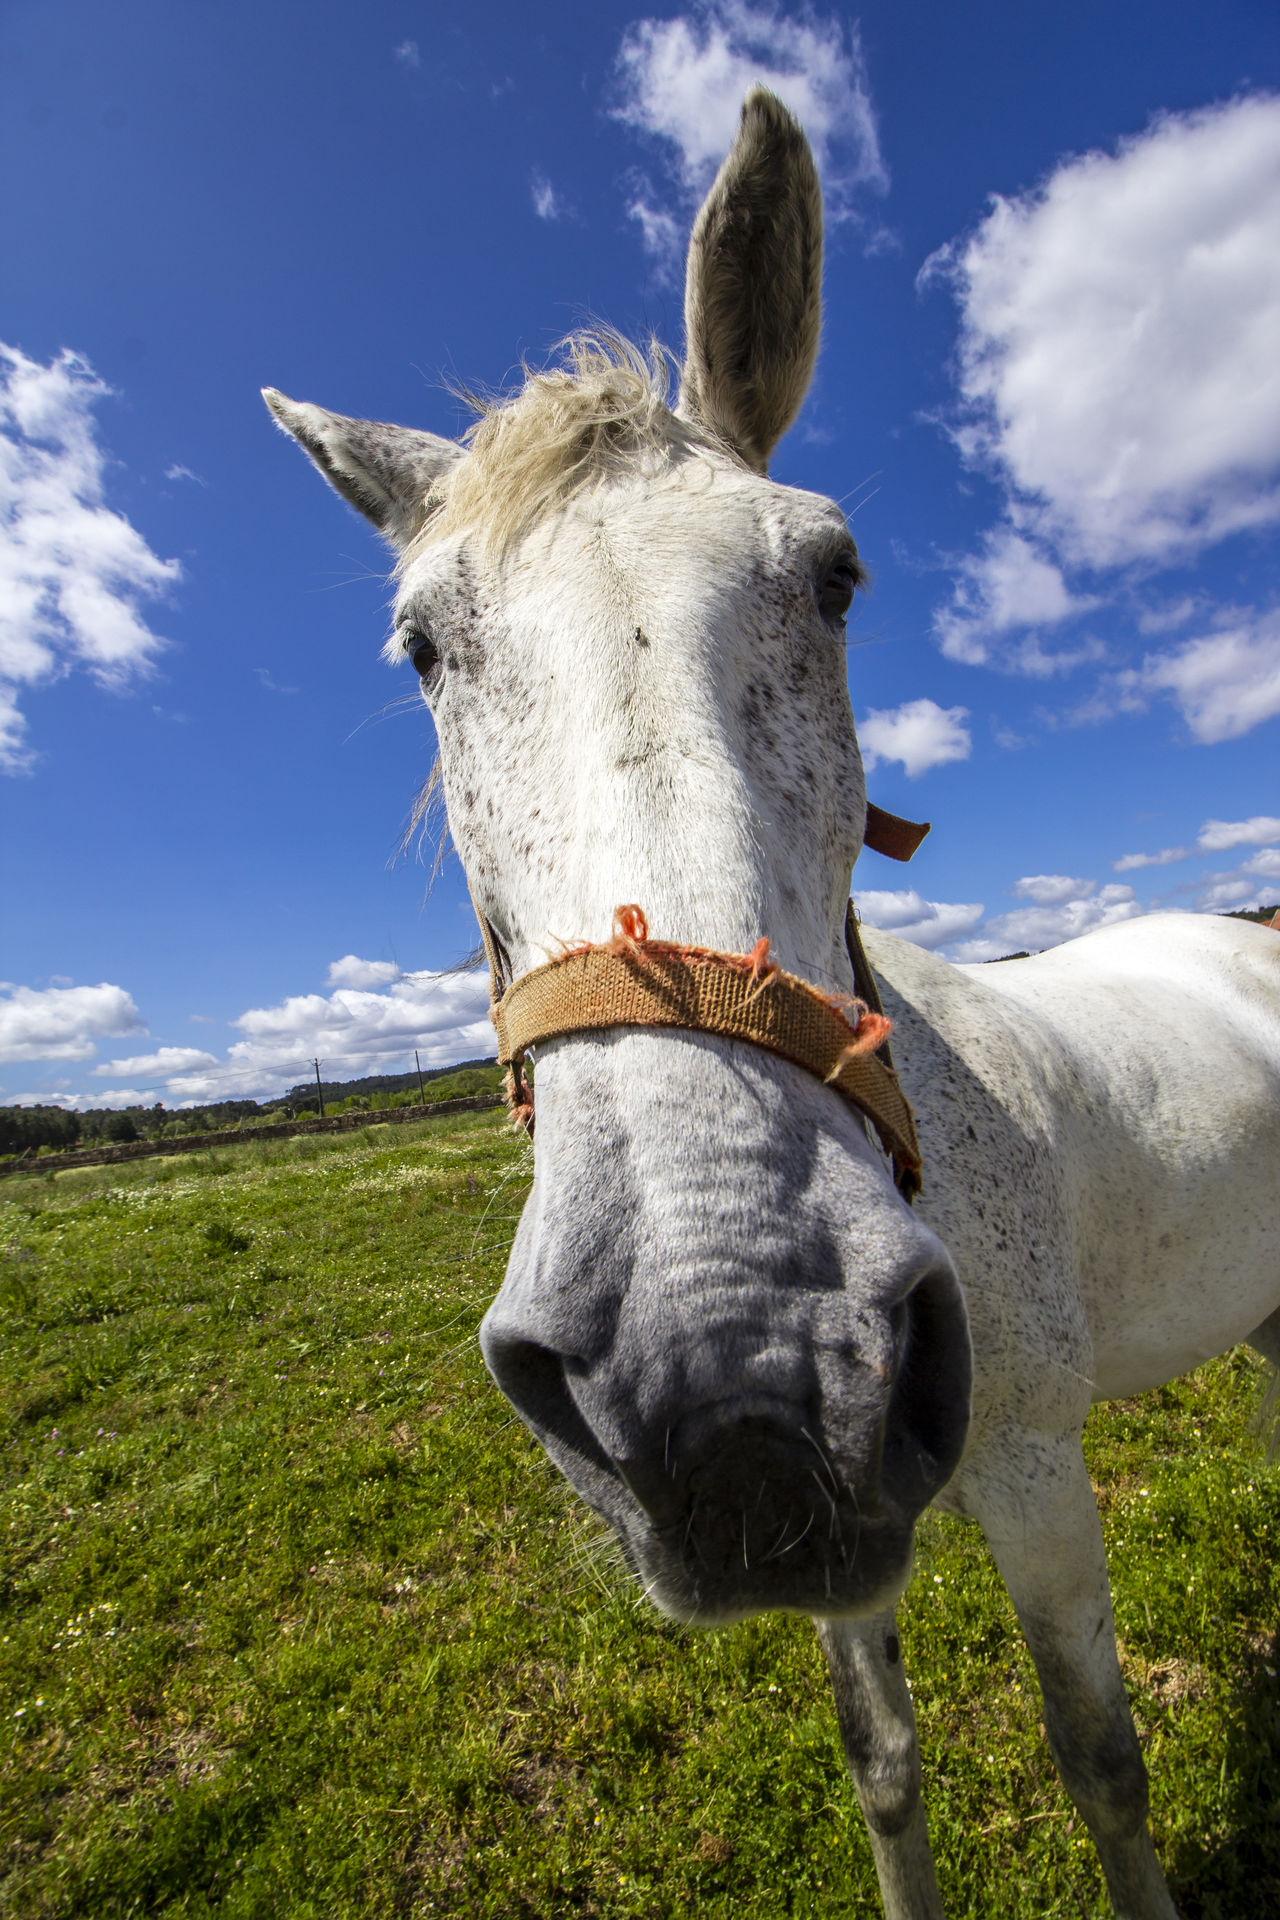 Animal Themes Close-up Day Domestic Animals Field Grass Landscape Mammal No People One Animal Outdoors Sky Worse  FUNNY ANIMALS Funny Faces Horse Photography  Angular Fisheye Portugal Face Grass Photography Grassfield Sky And Clouds Nature